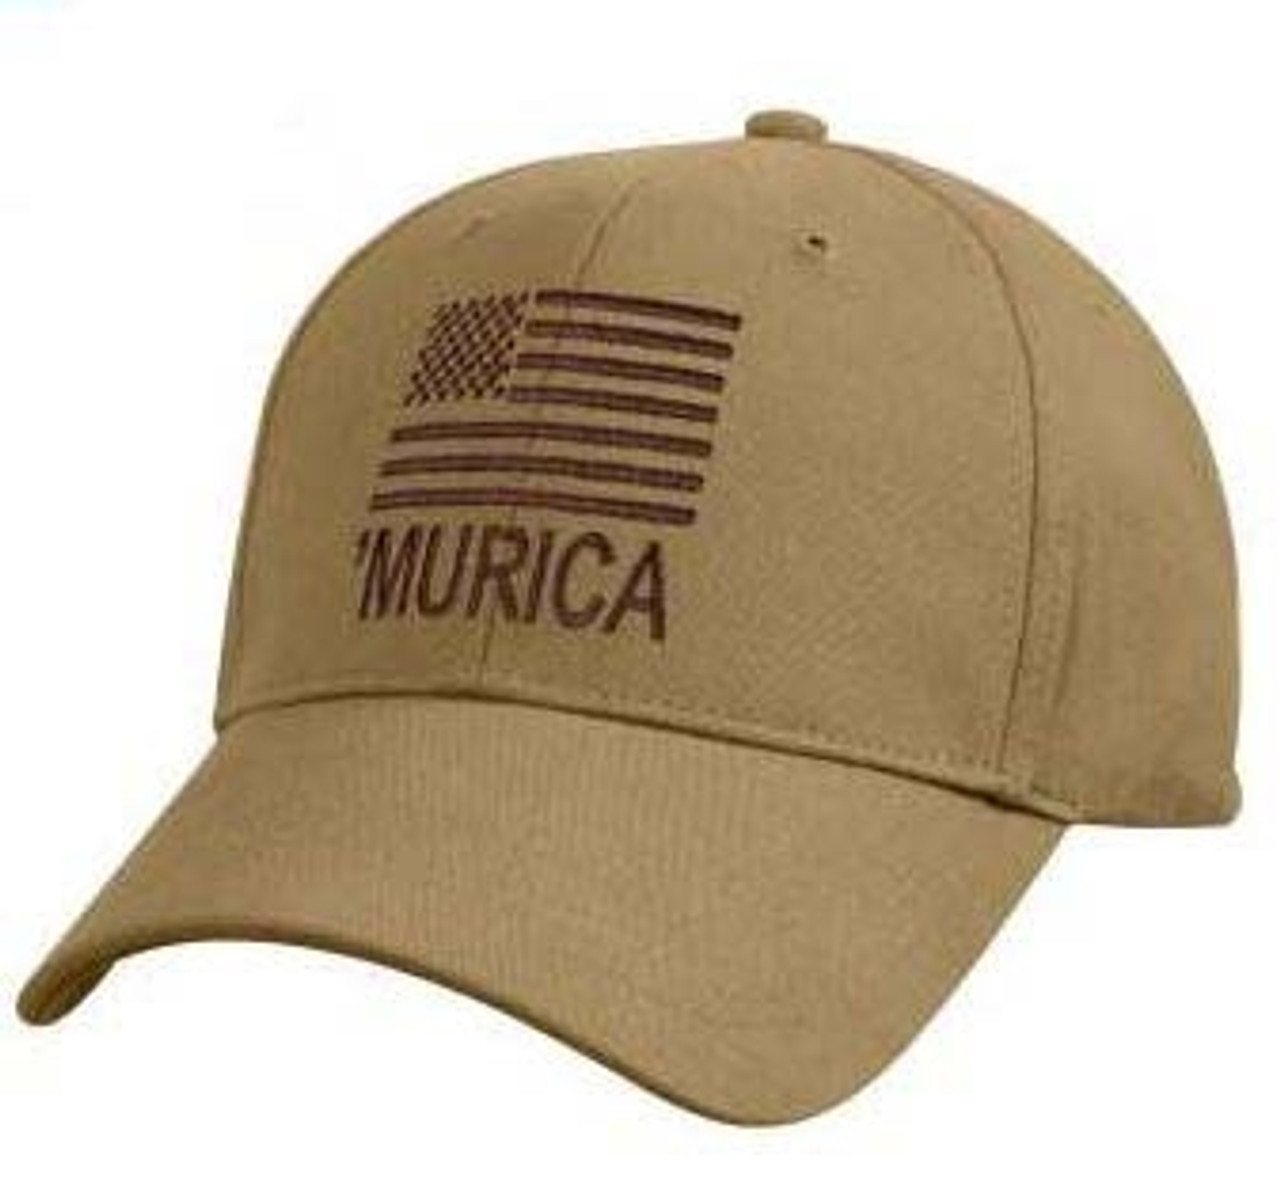 'MURICA Coyote Brown Deluxe Low Profile Cap With Flag from Hessen Antique